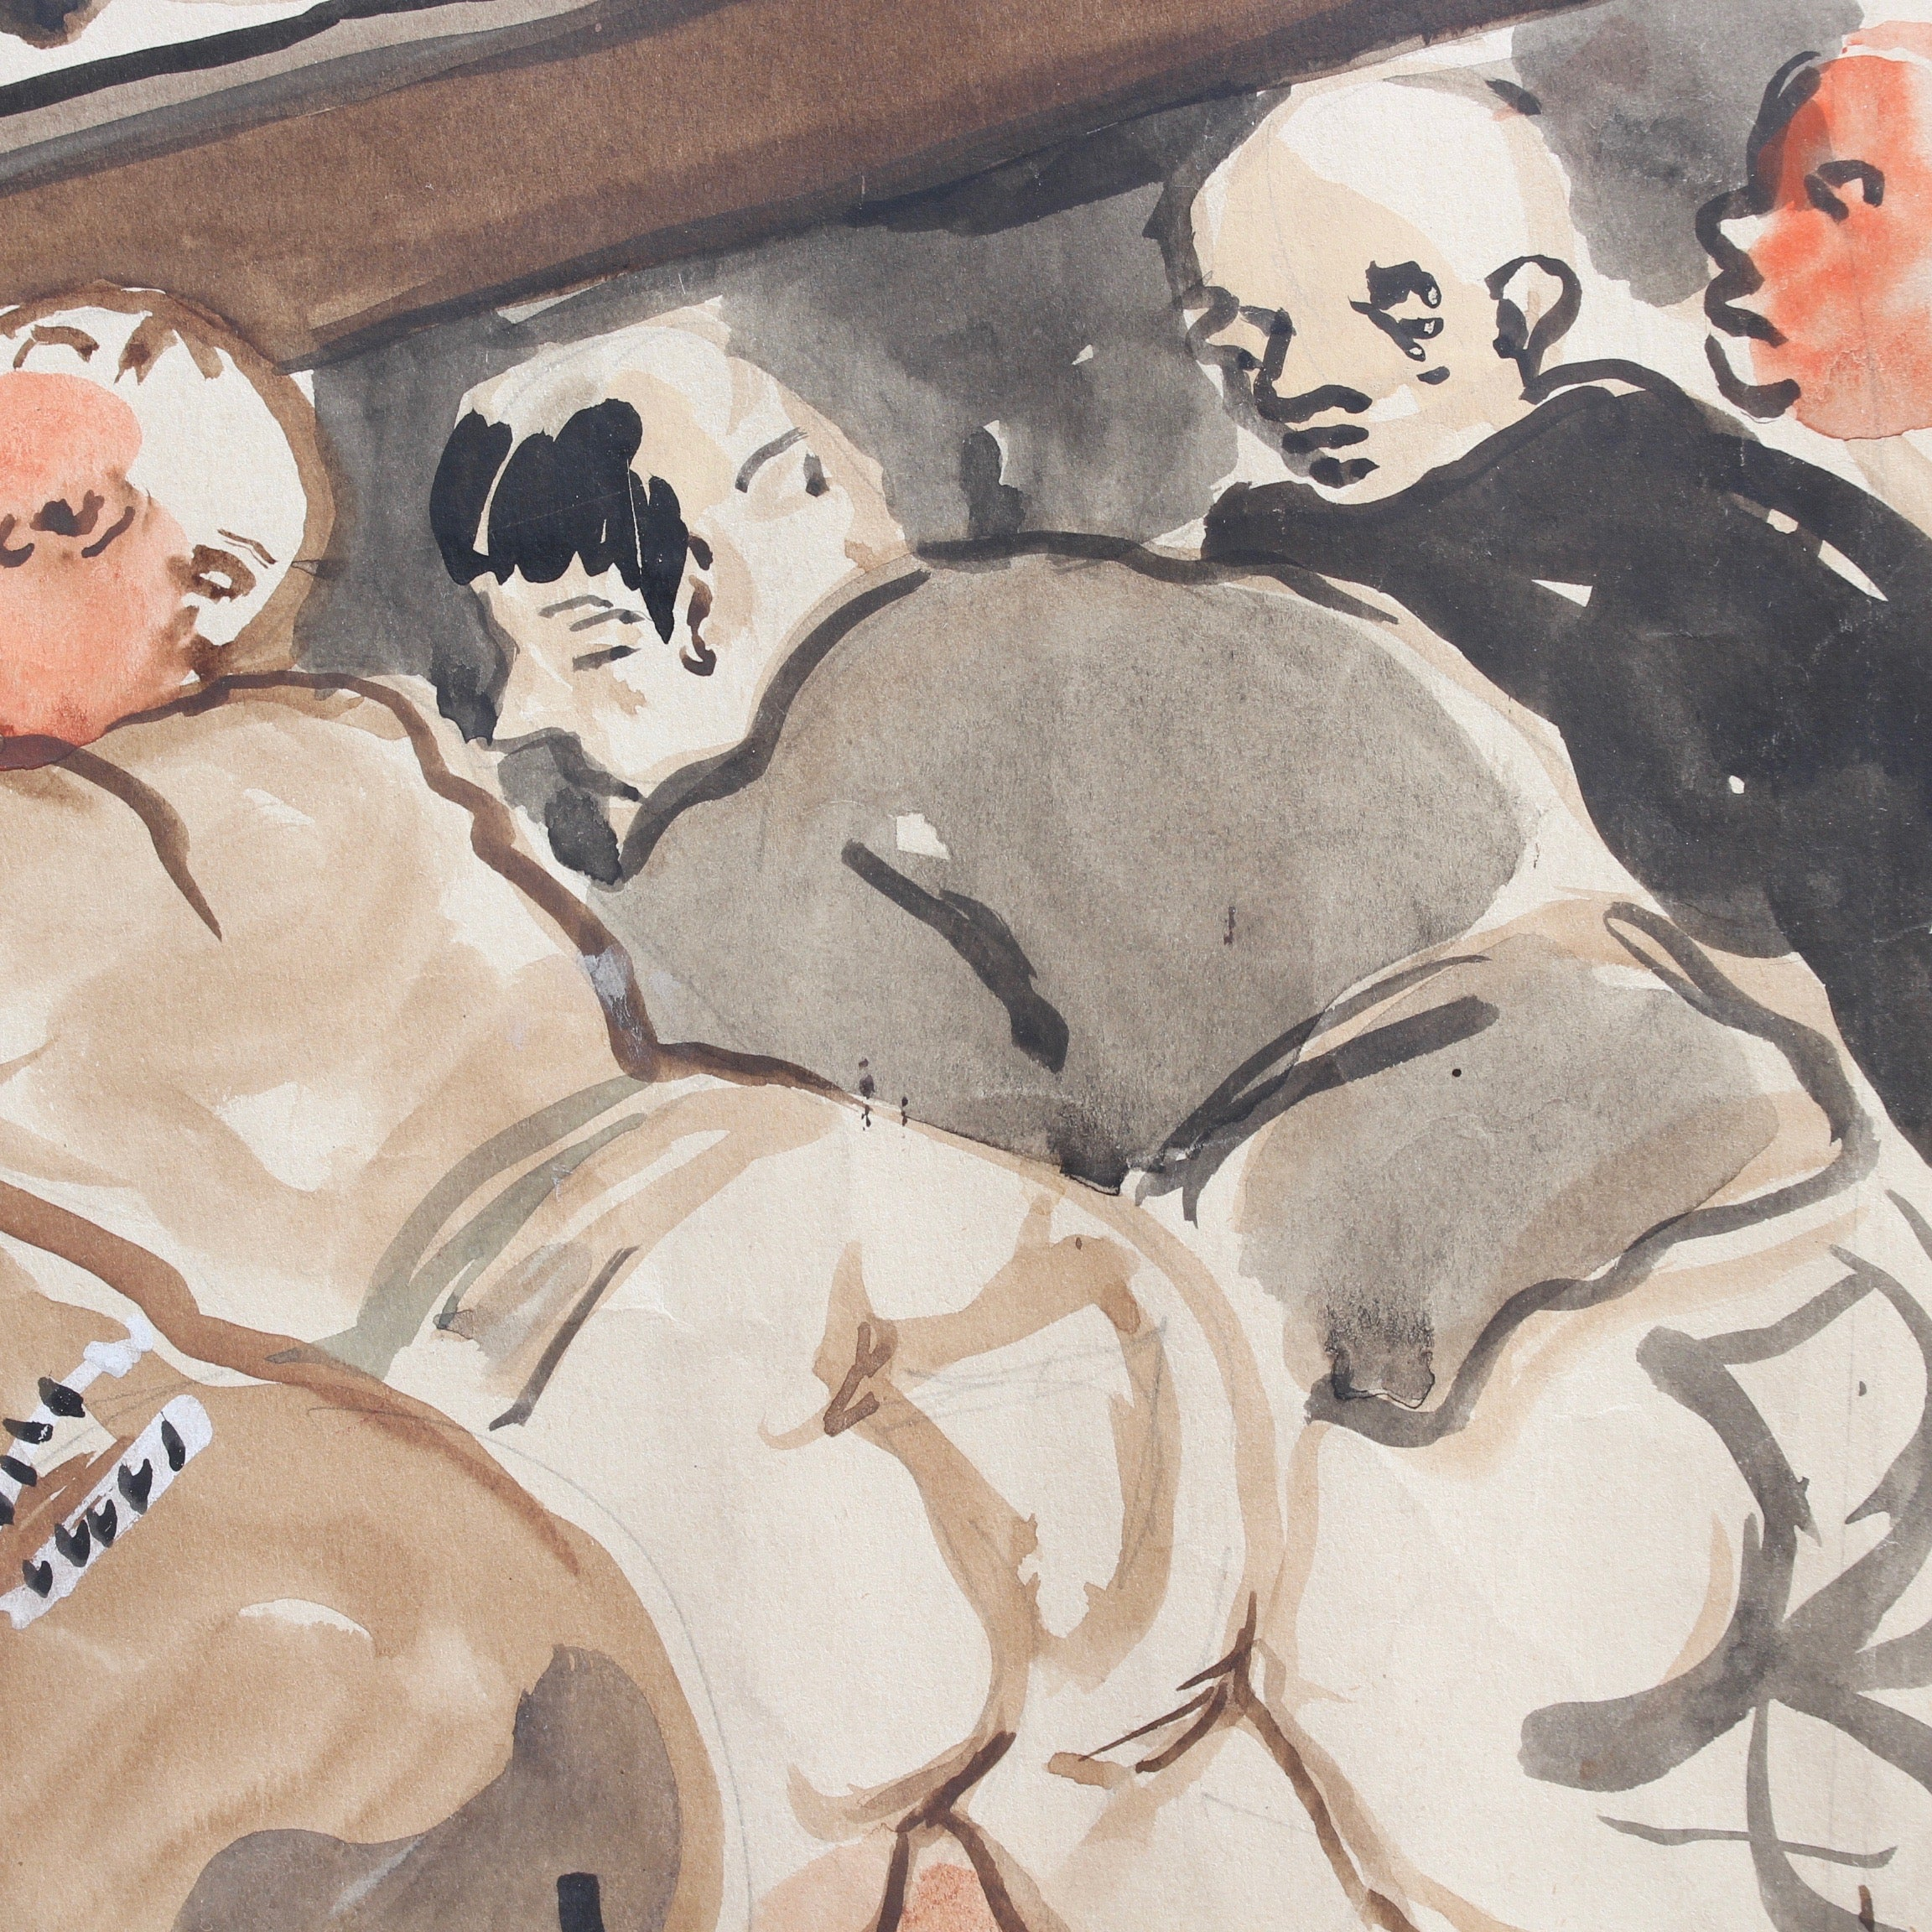 'The Repast of the Monks' by Yves Brayer (1946)